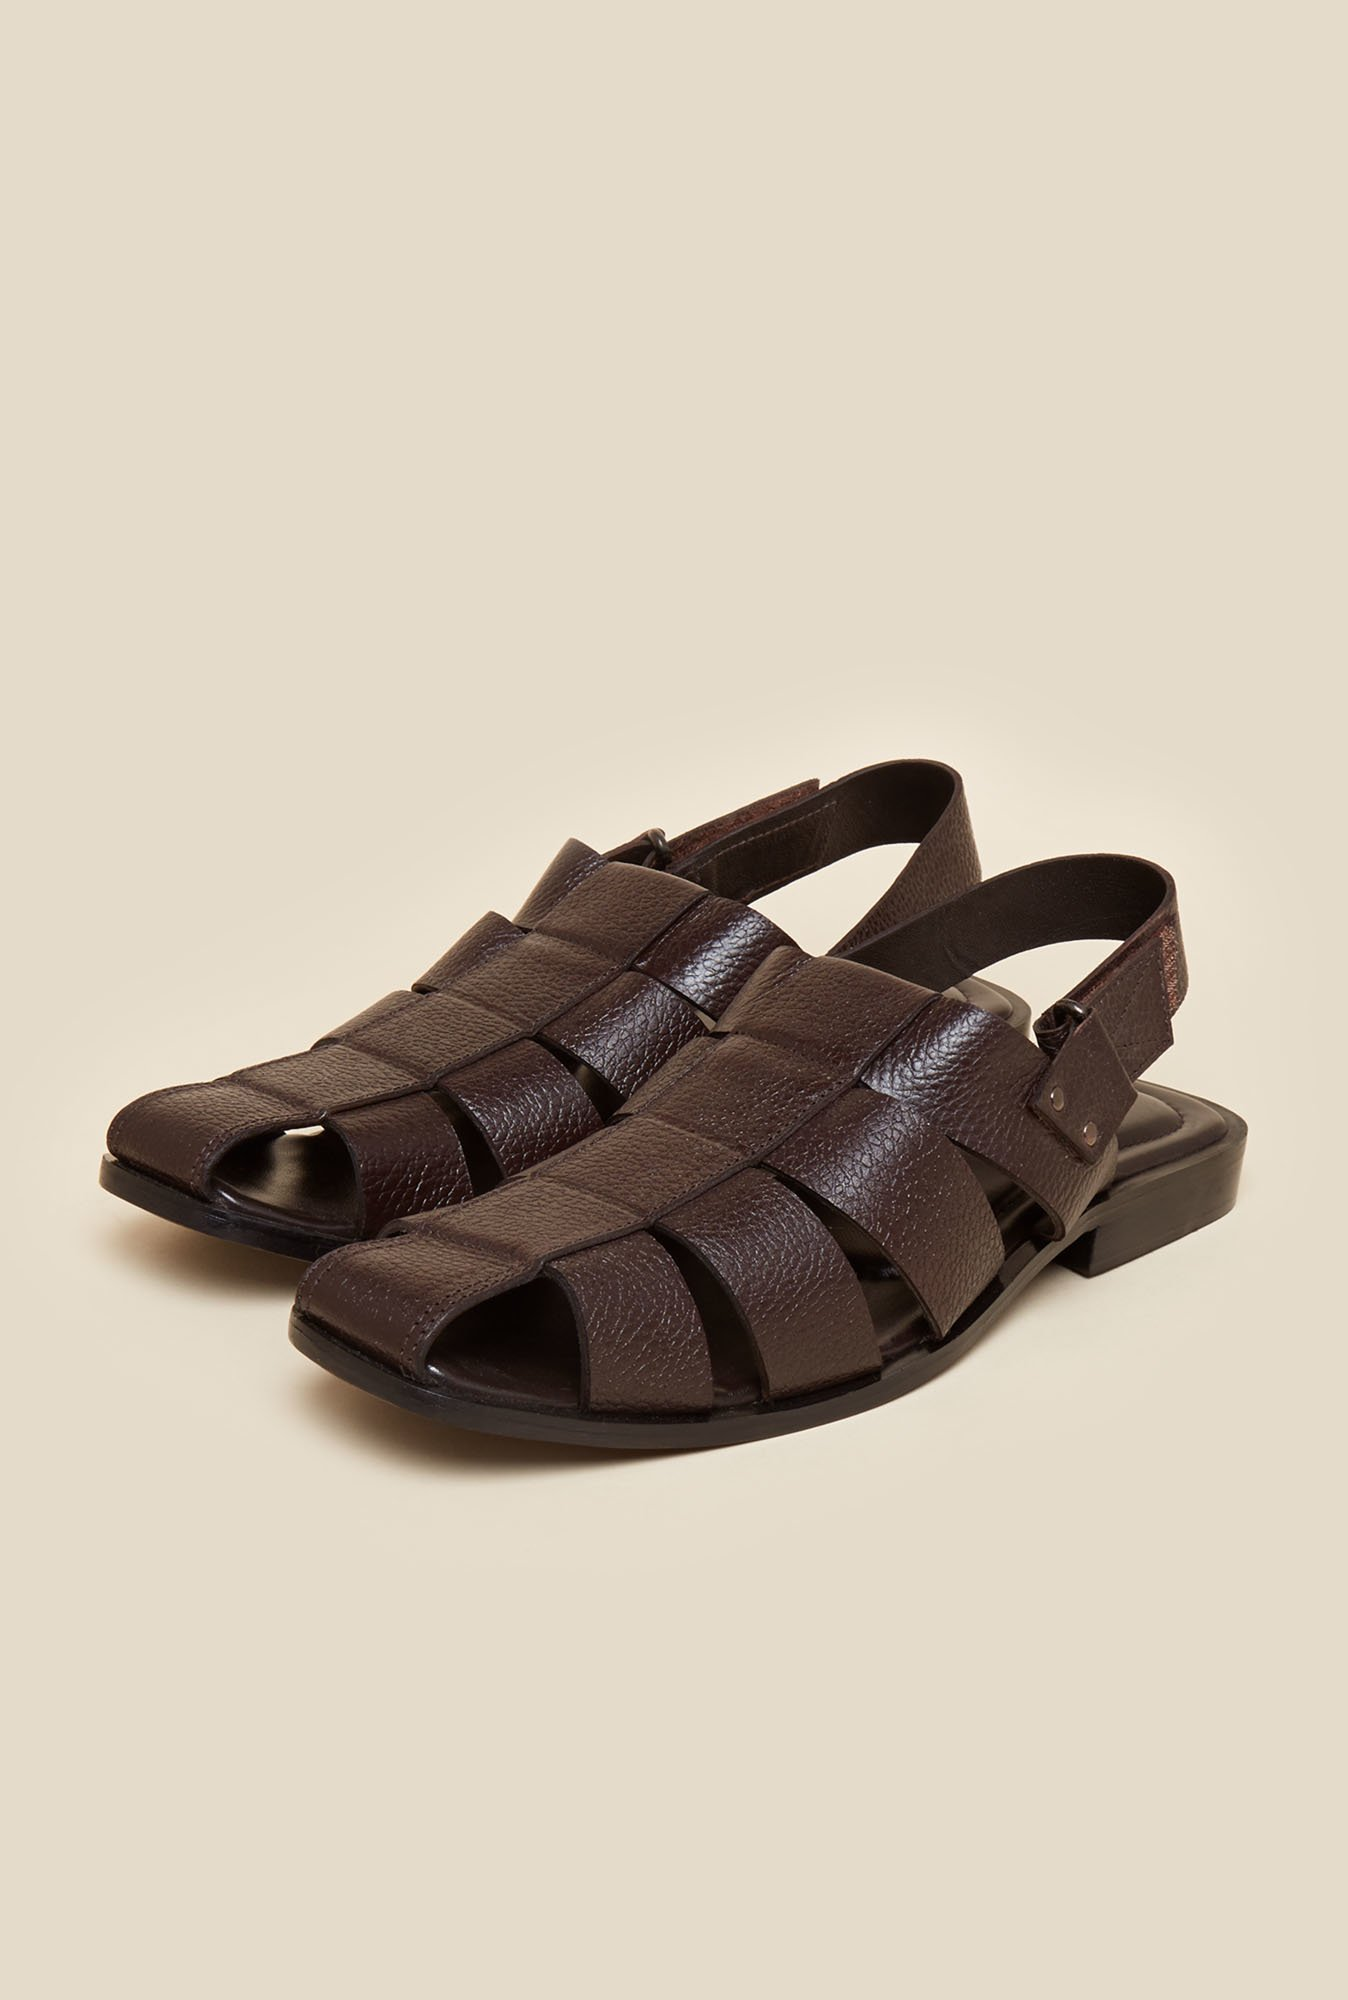 Metro Brown Leather Back Strap Sandals